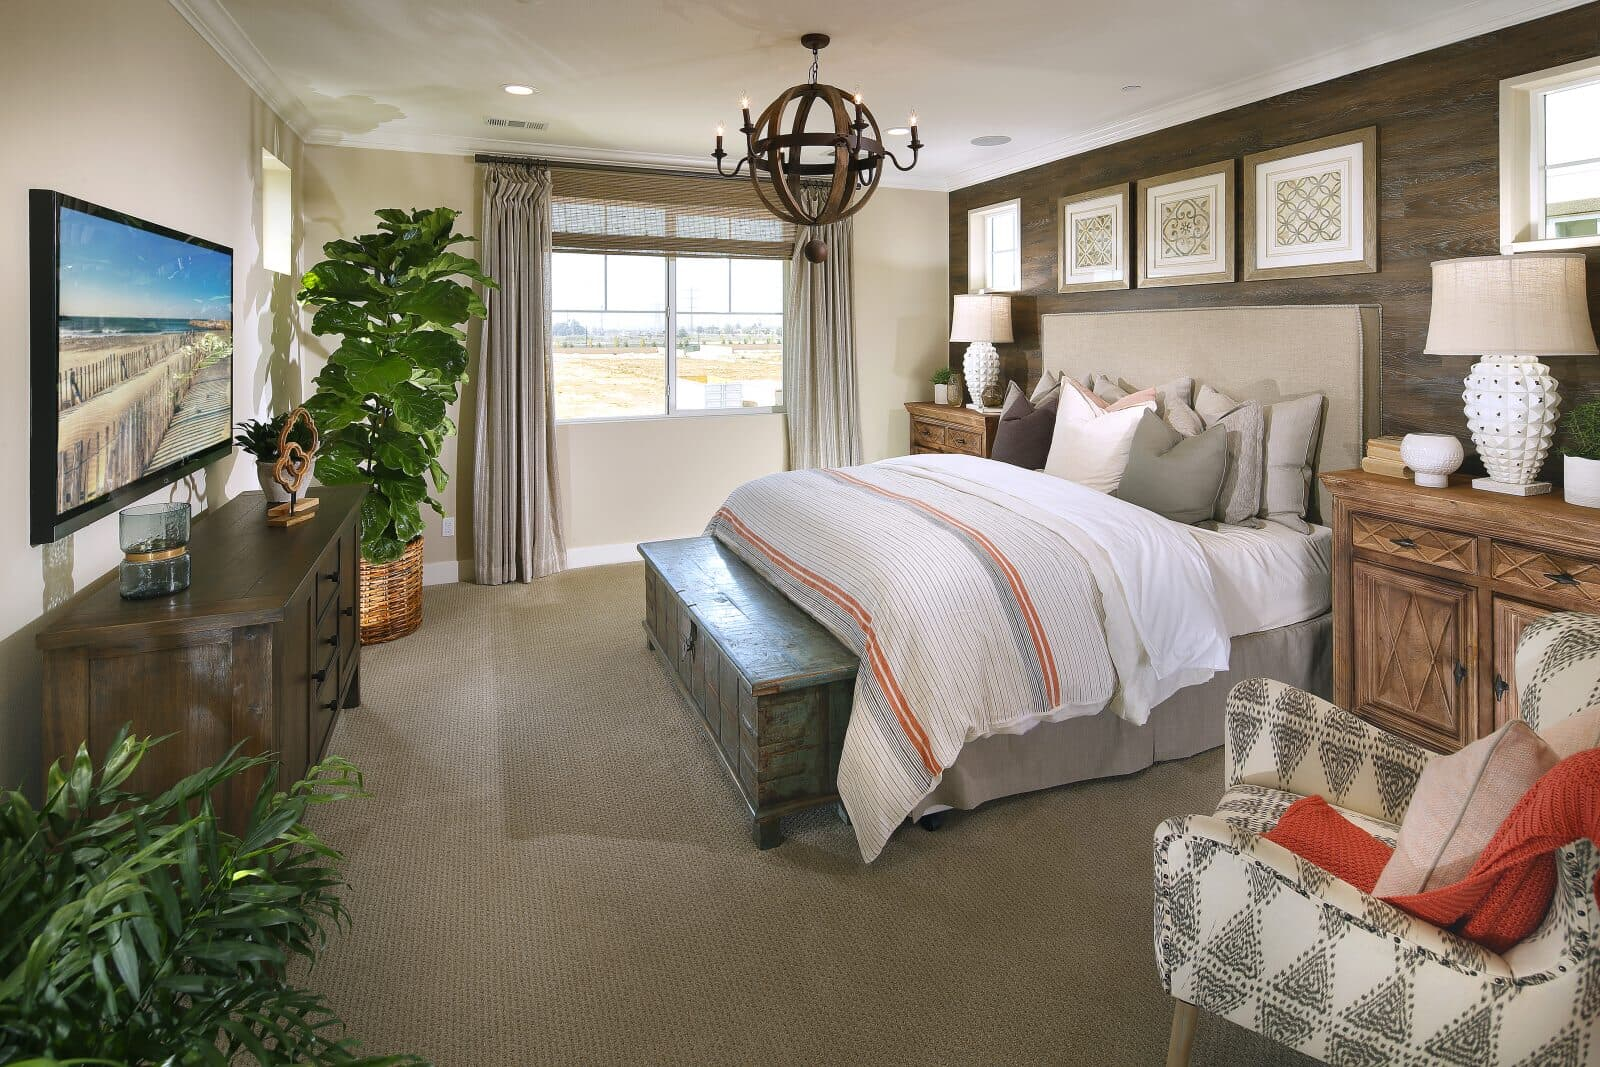 Ontario ranch homes for sale waverly at new haven for 2 master bedroom homes for sale